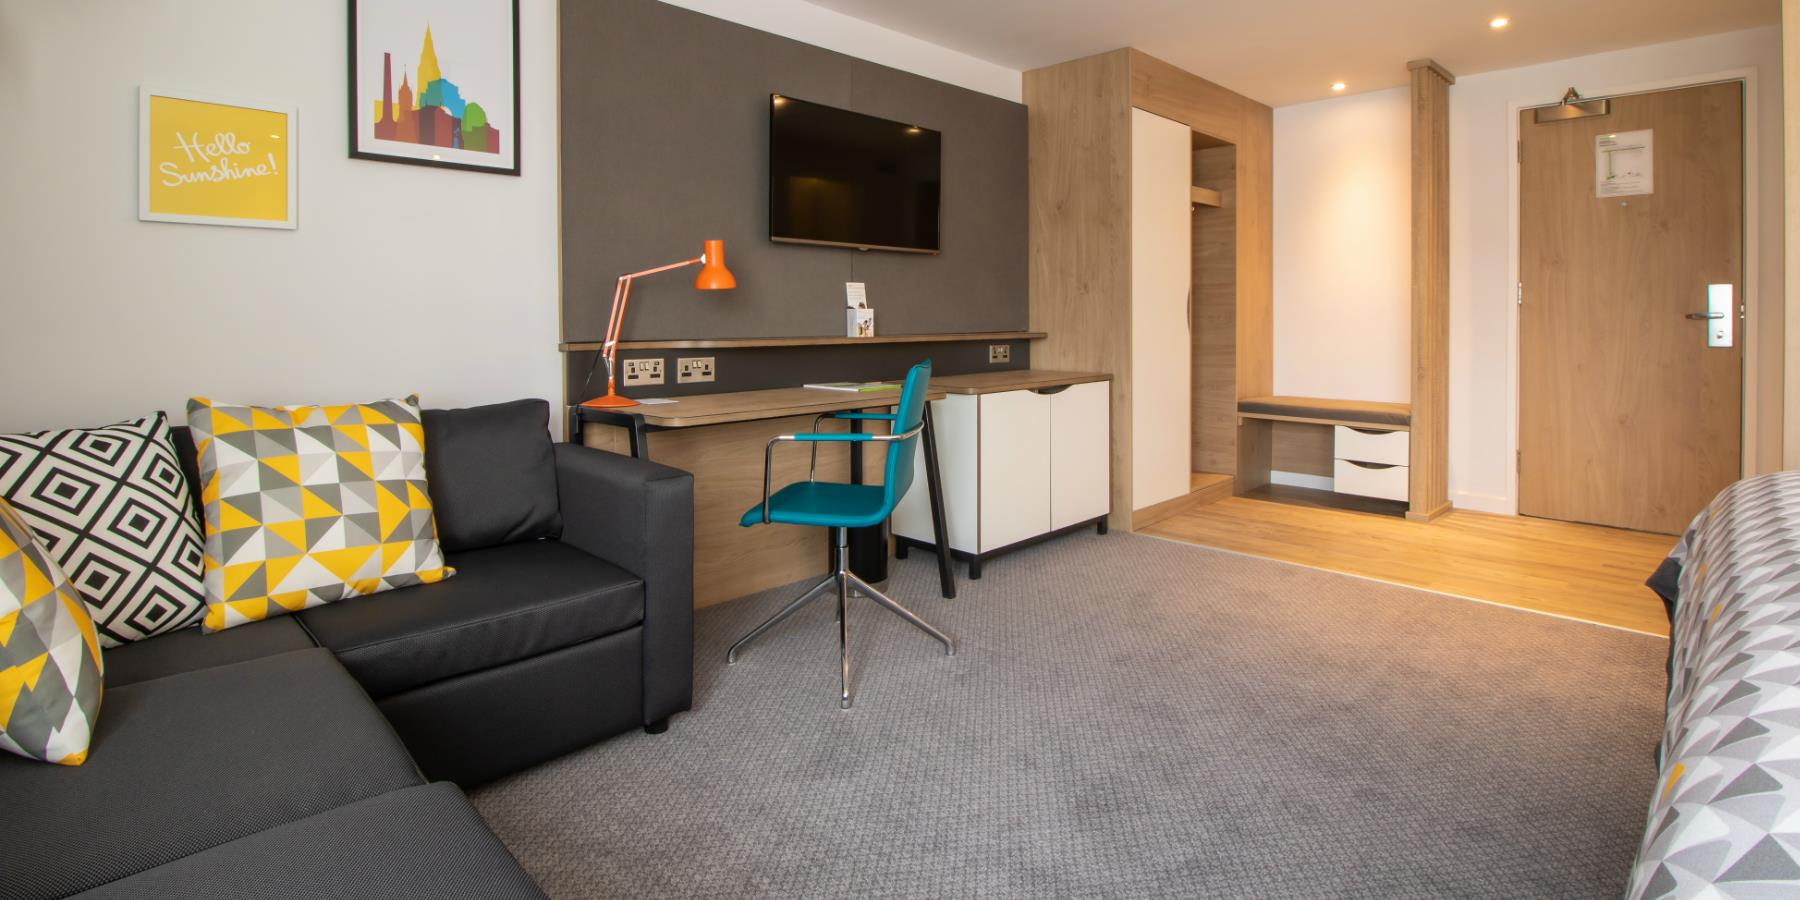 Holiday Inn Leicester - Wigston - Interior of room